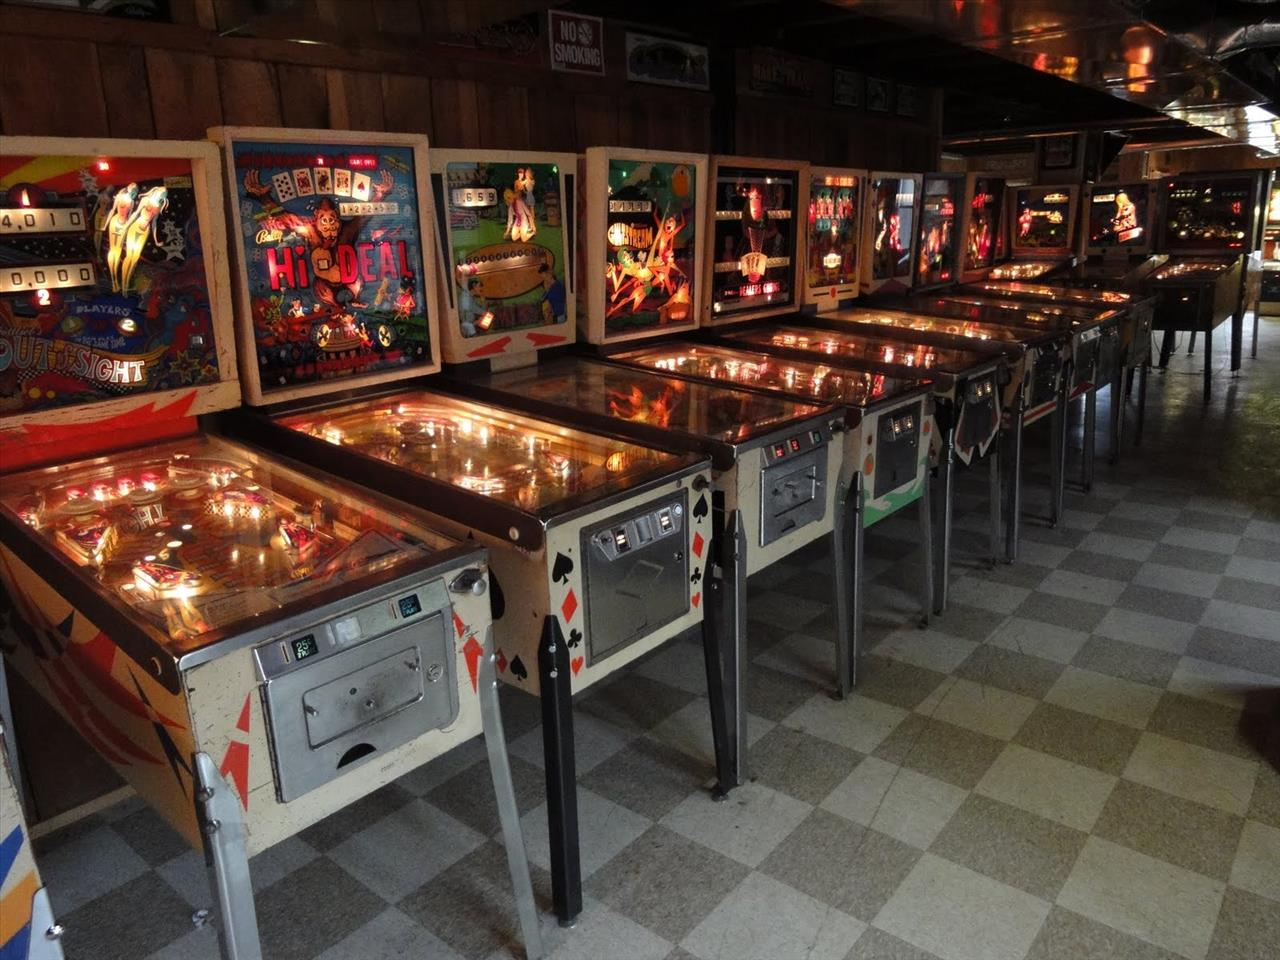 Back from the Dead: The Rebirth of the Pinball Genre (Interview)